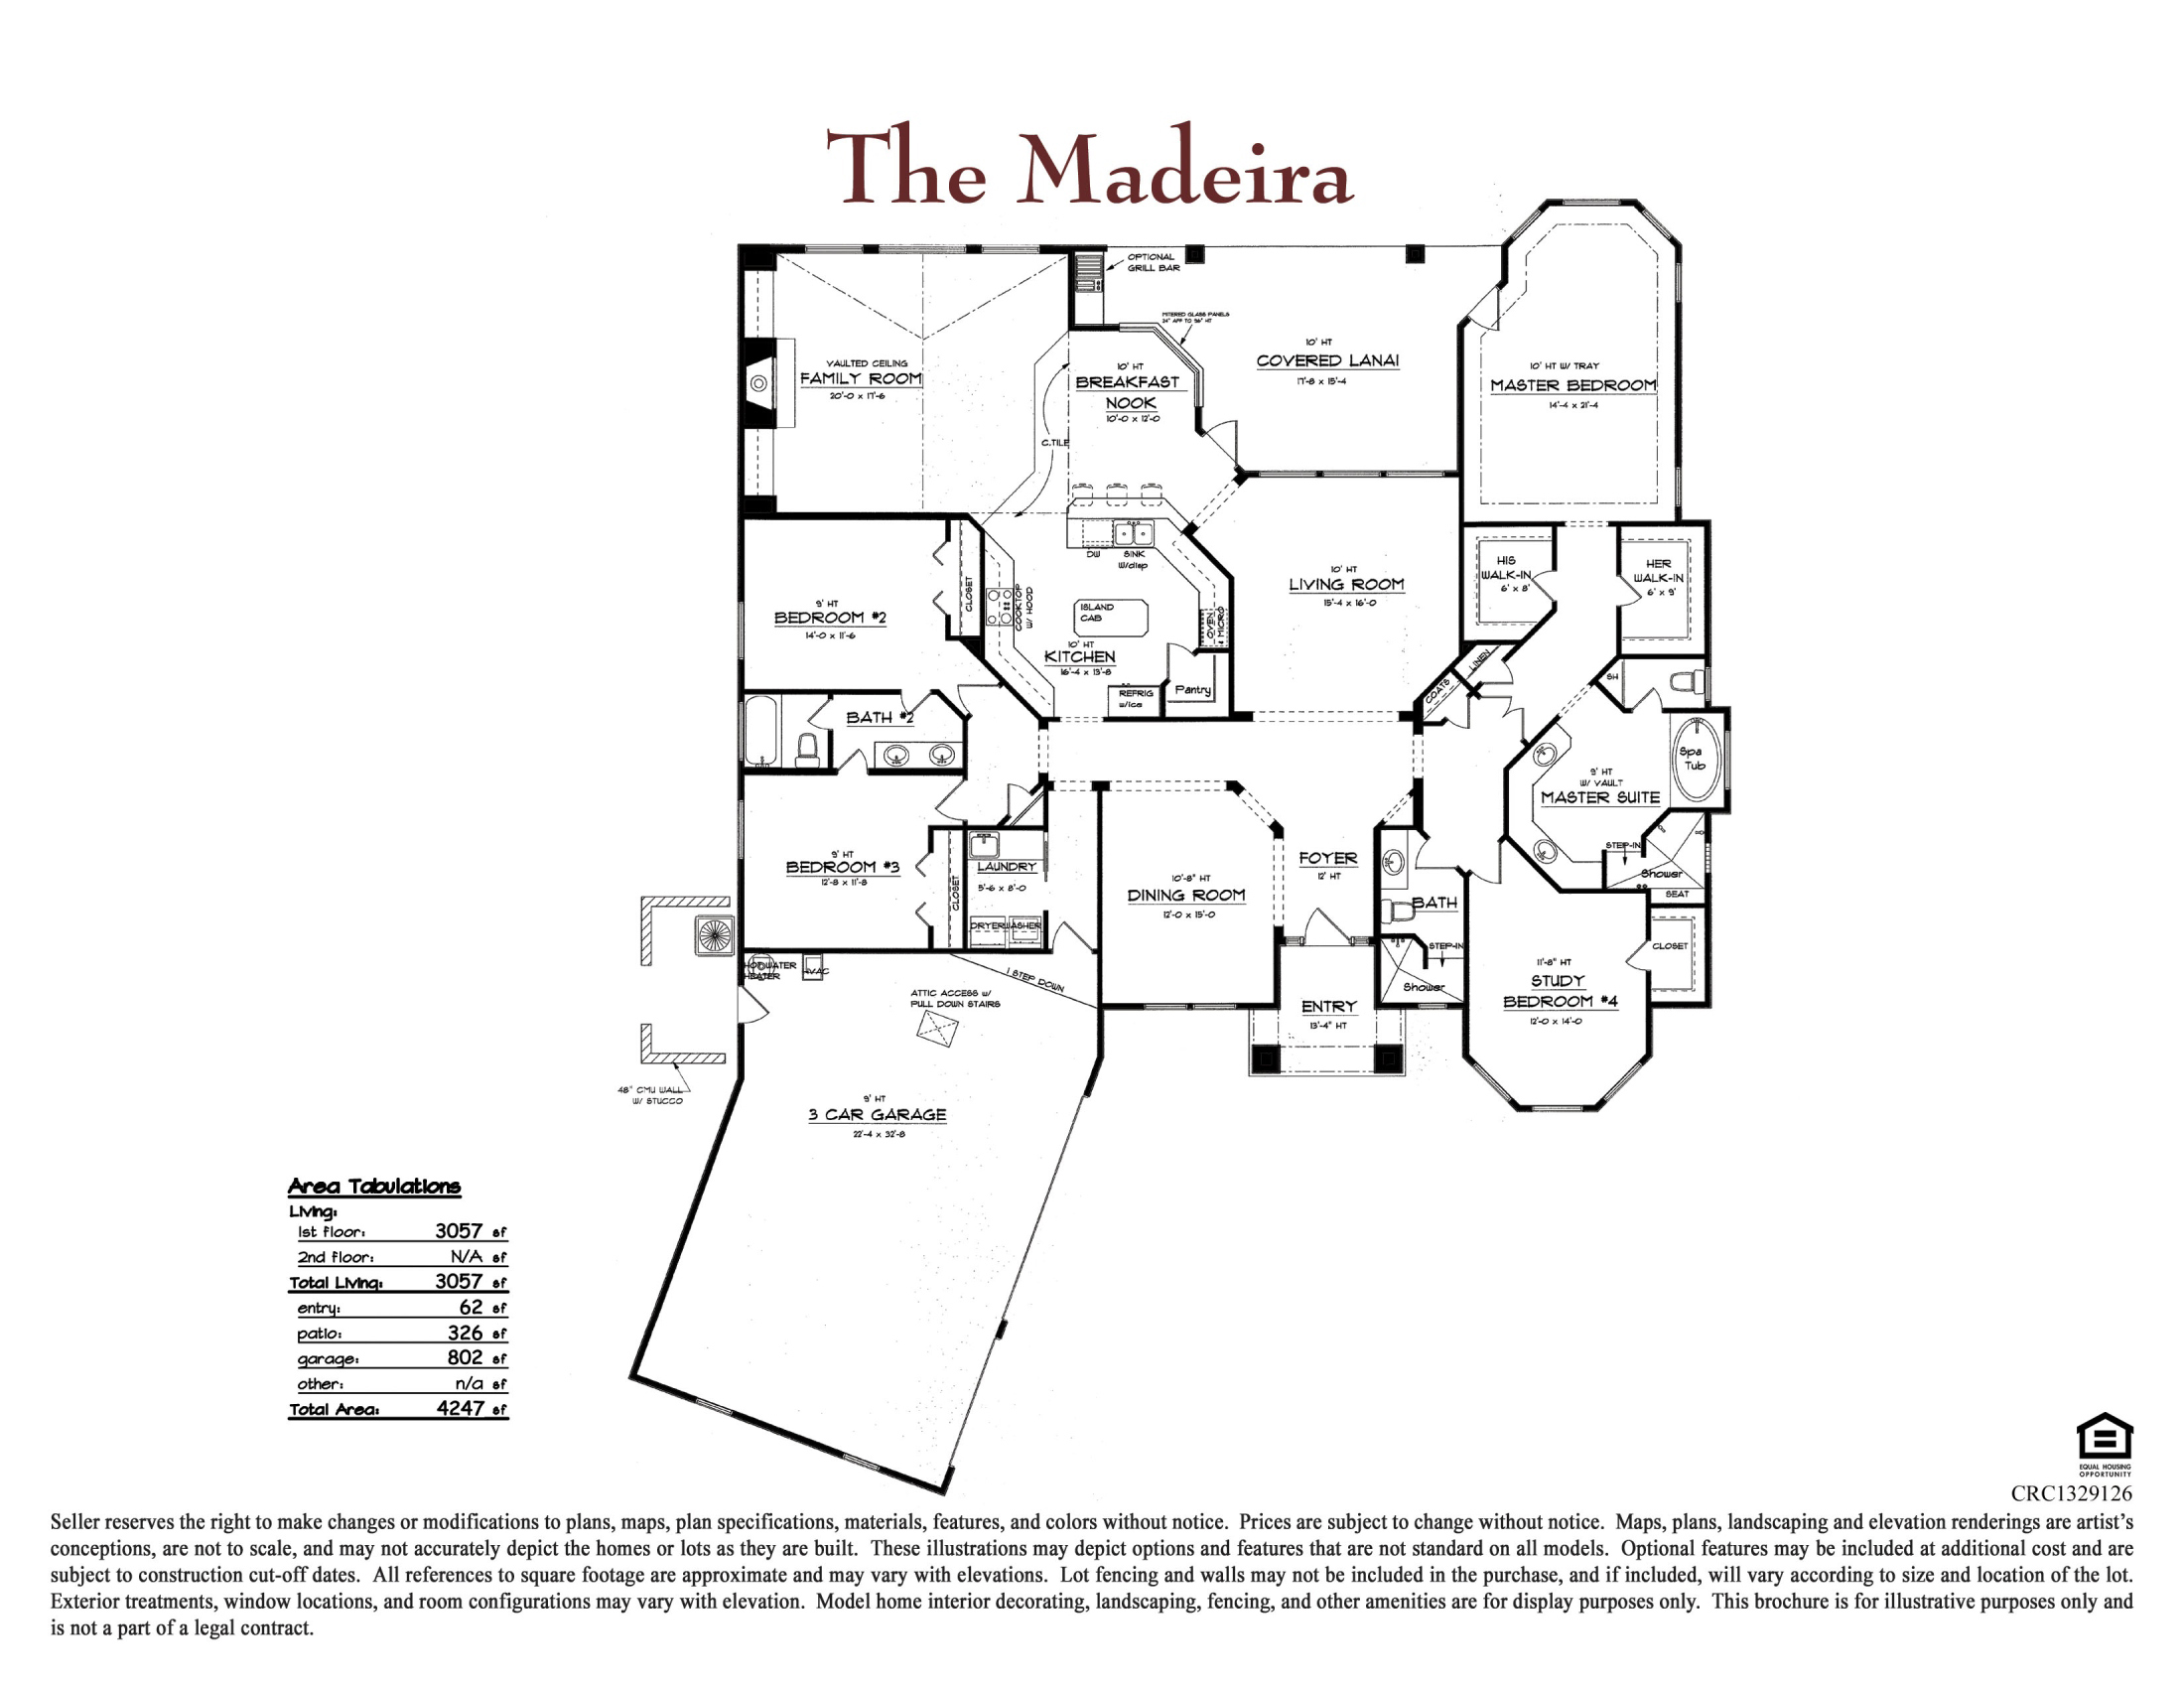 The Maderia